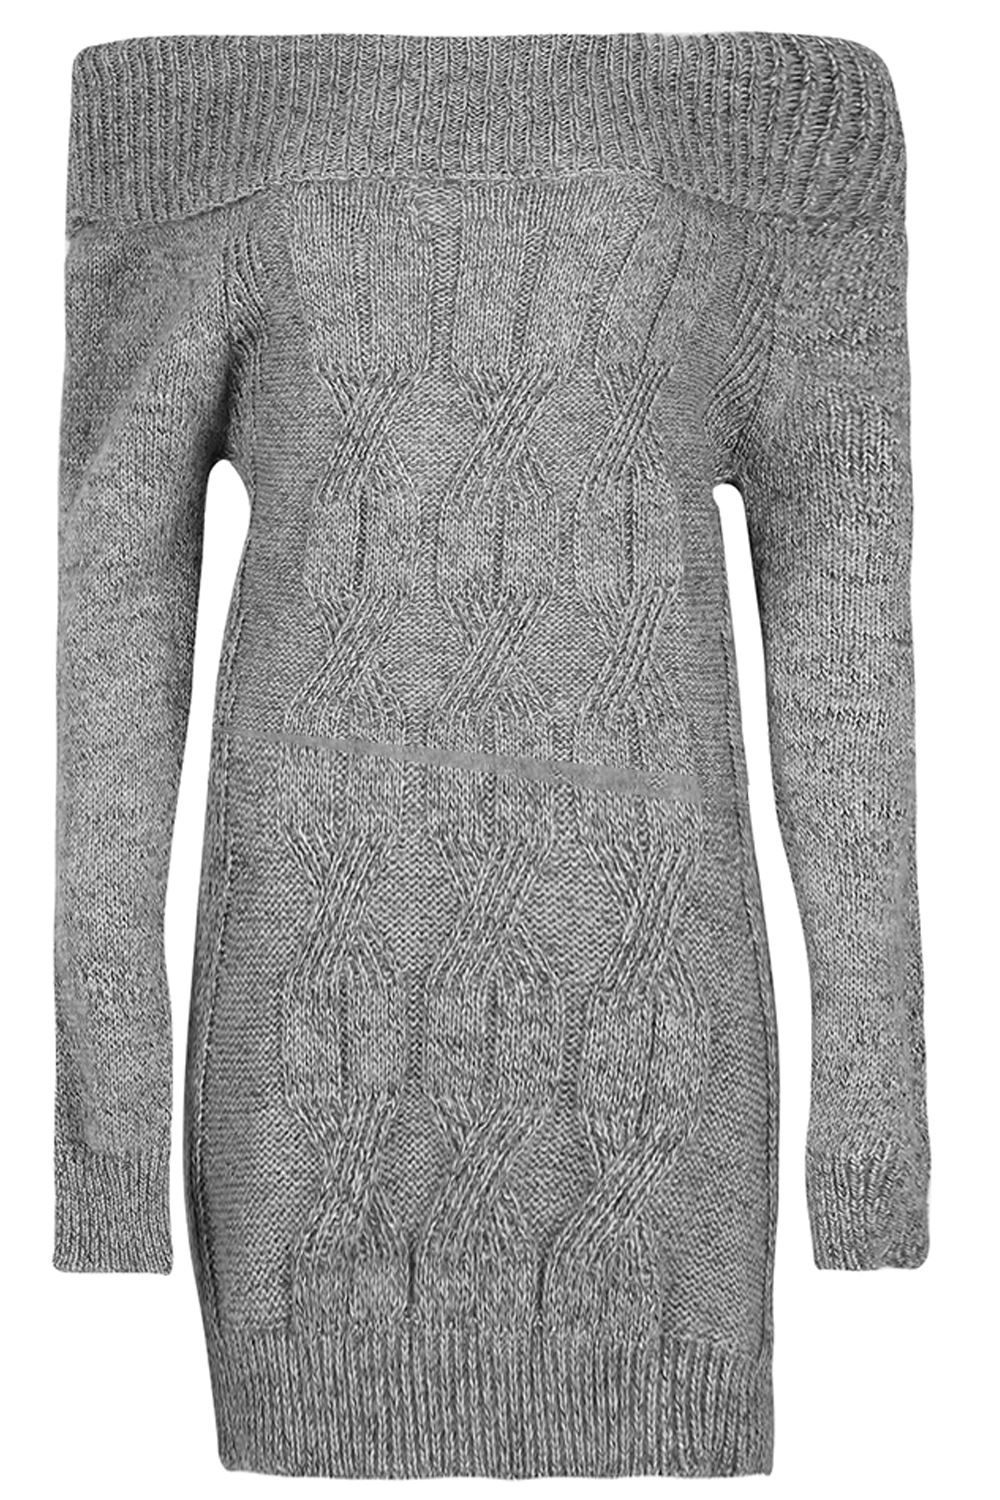 Womens-Ladies-Off-Shoulder-Cable-Chunky-Knit-Jumper-Dress-Bodycon-Mini-Sweater